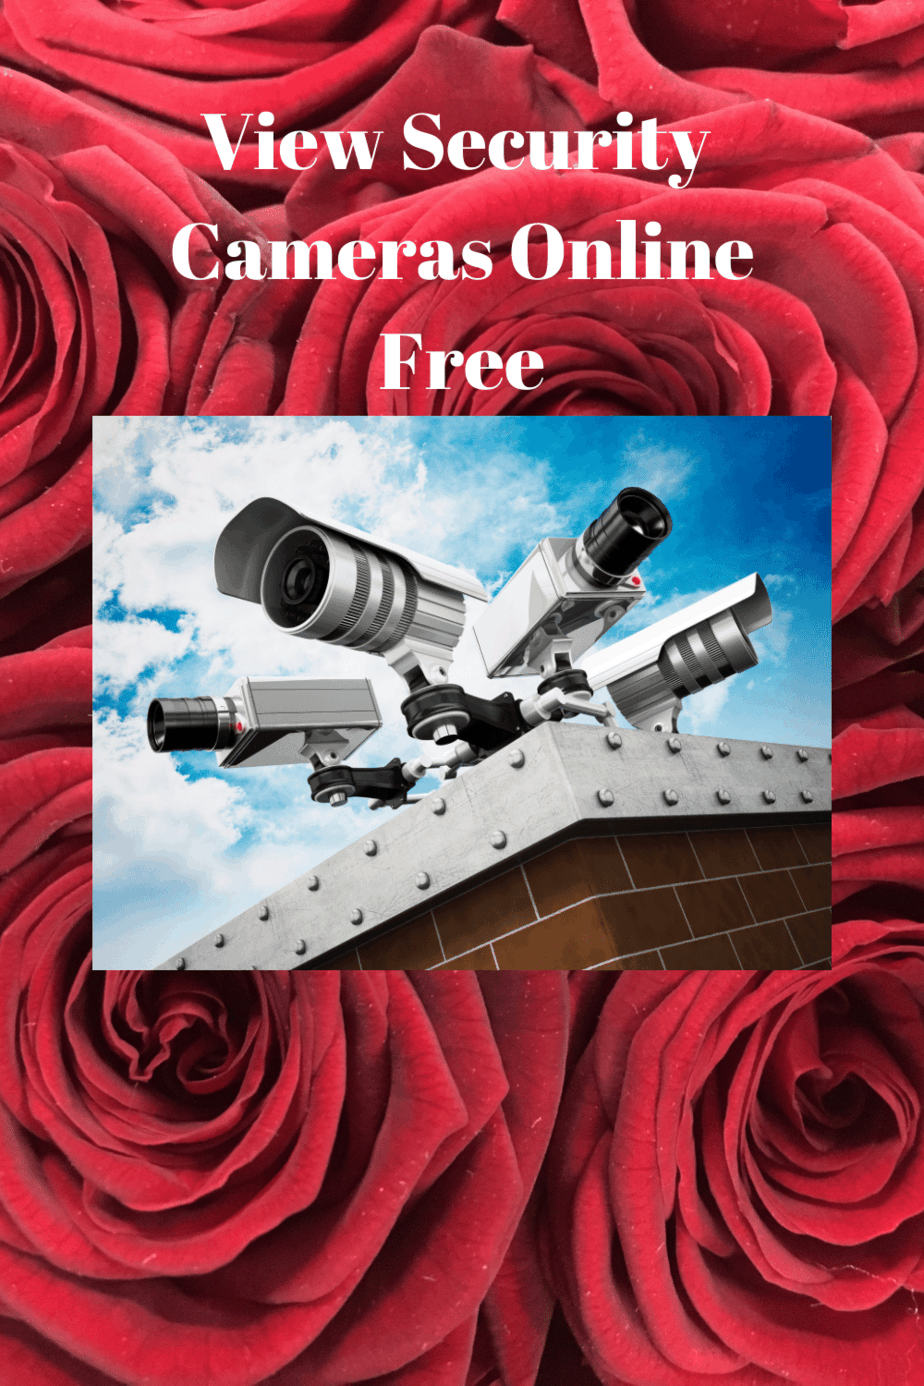 View Security Cameras Online Free